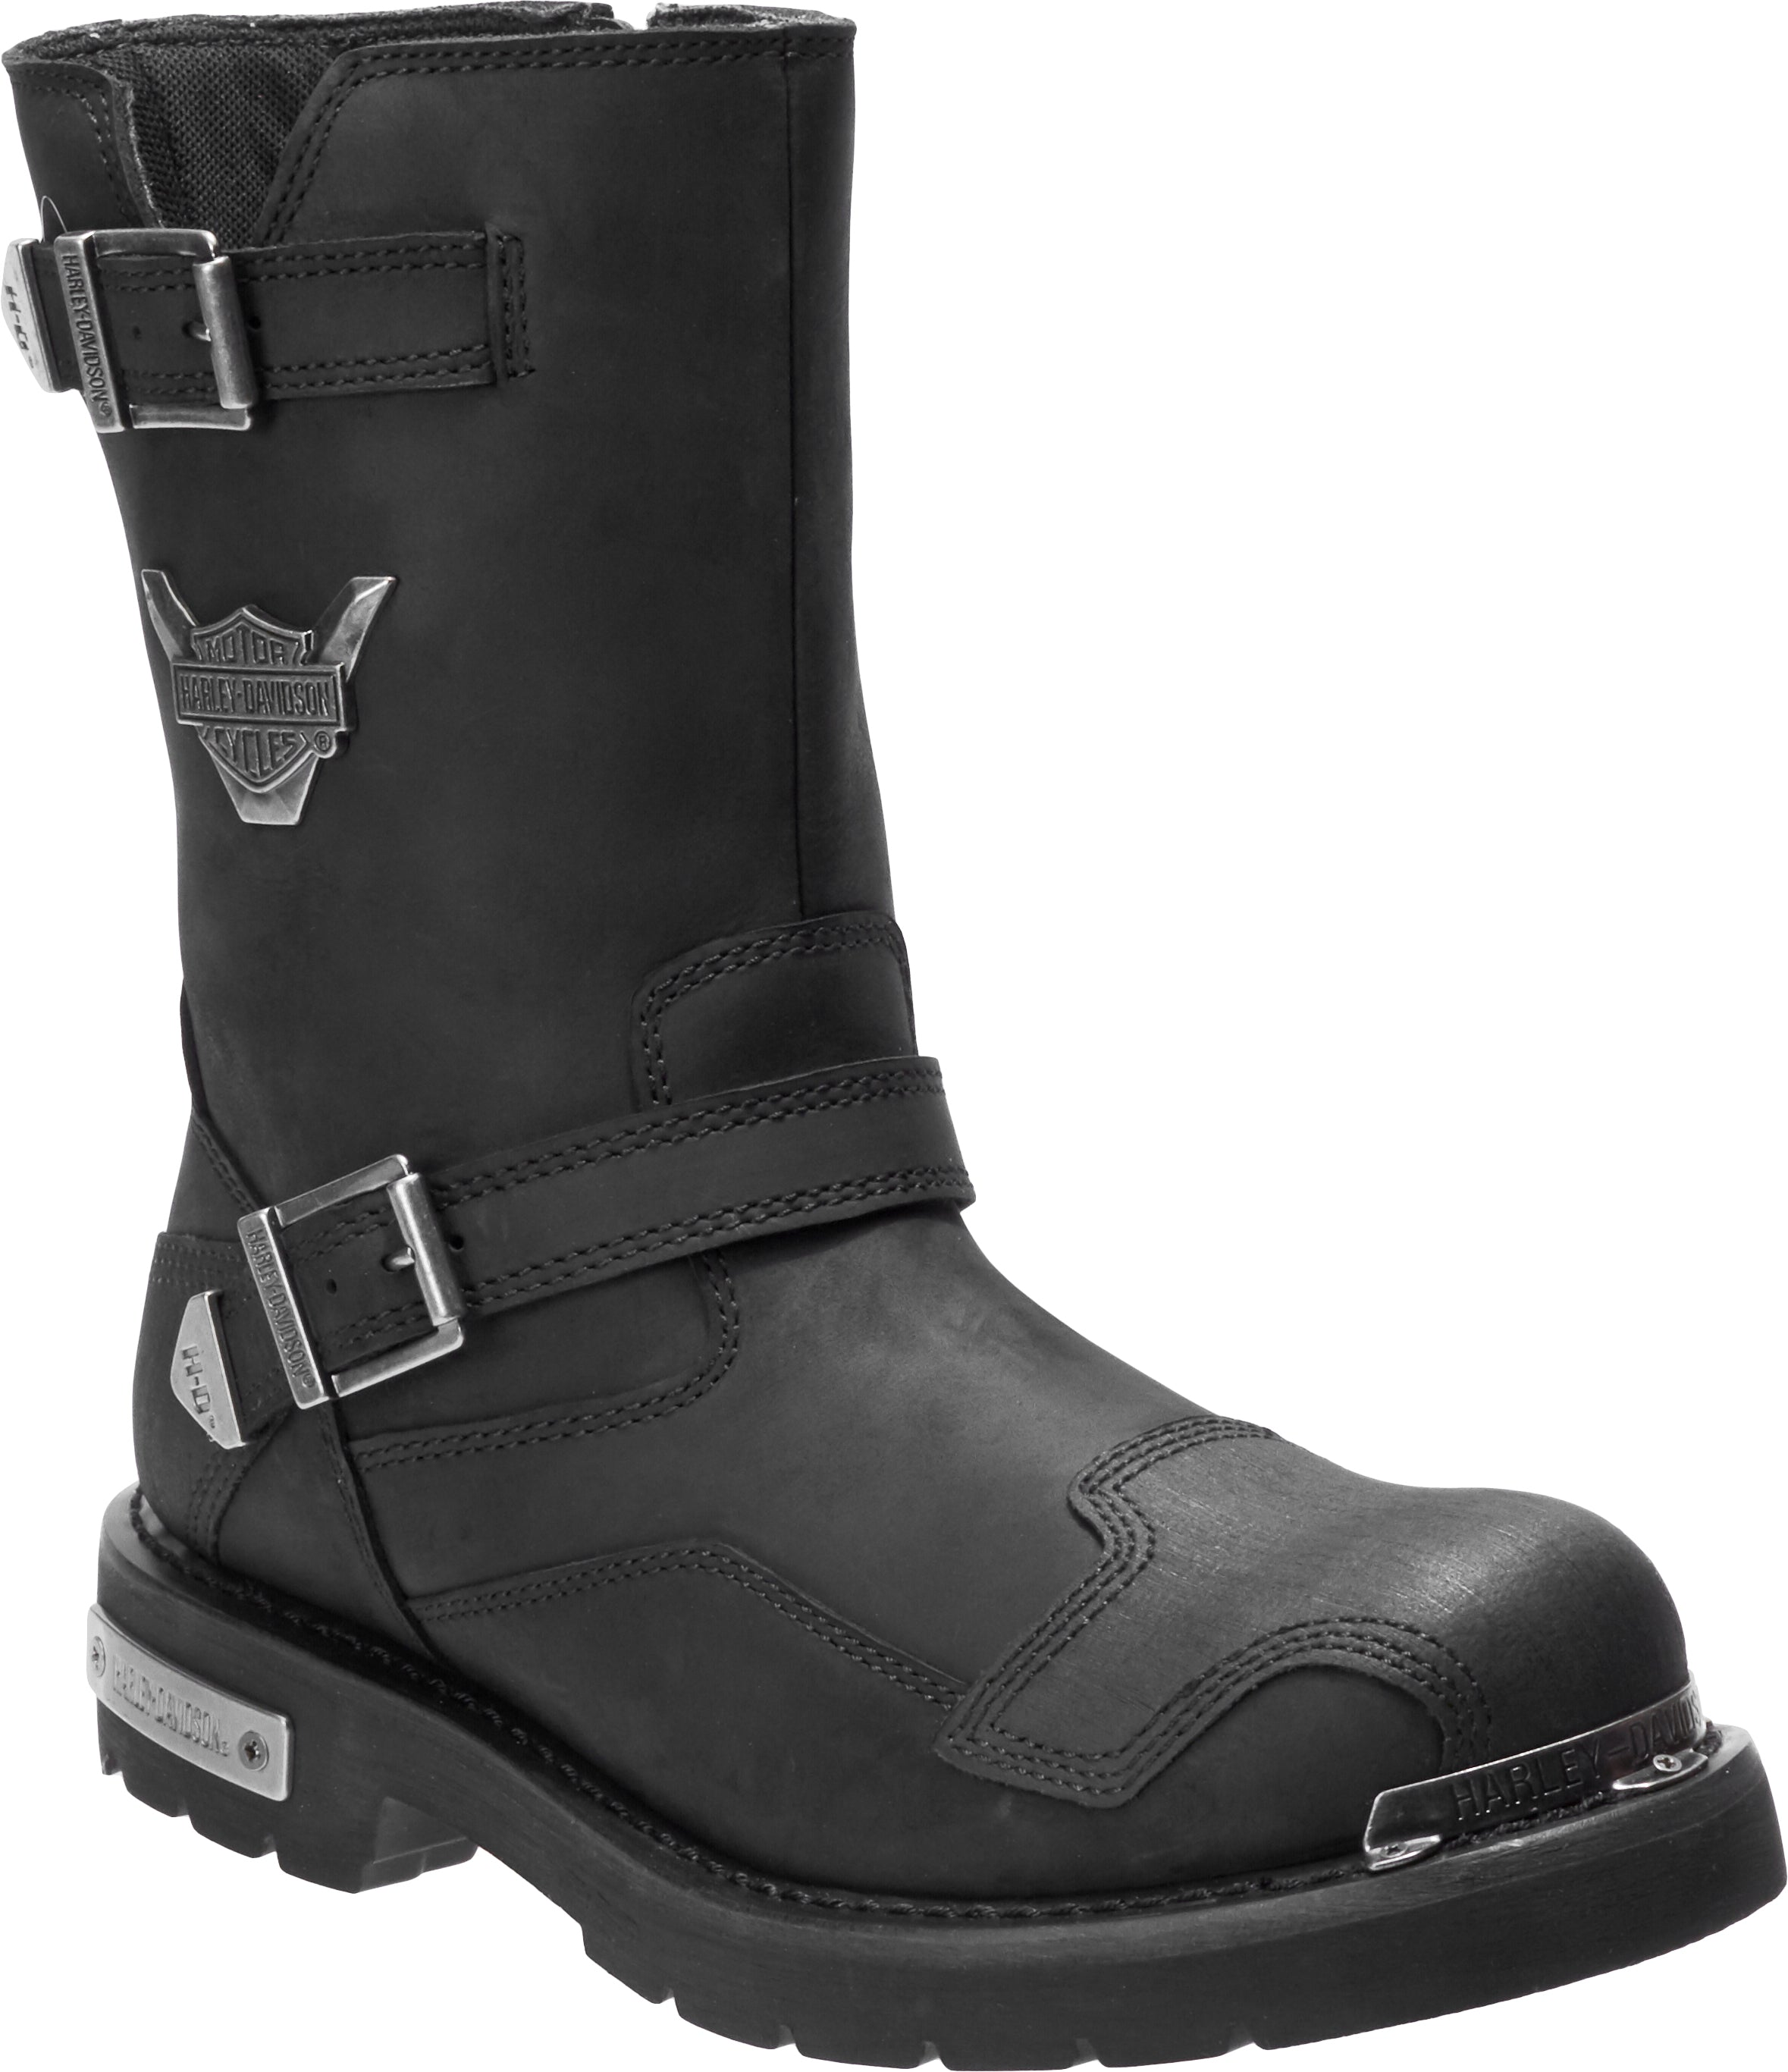 'Harley Davidson' D93521 - Men's Stroman Boot - Black